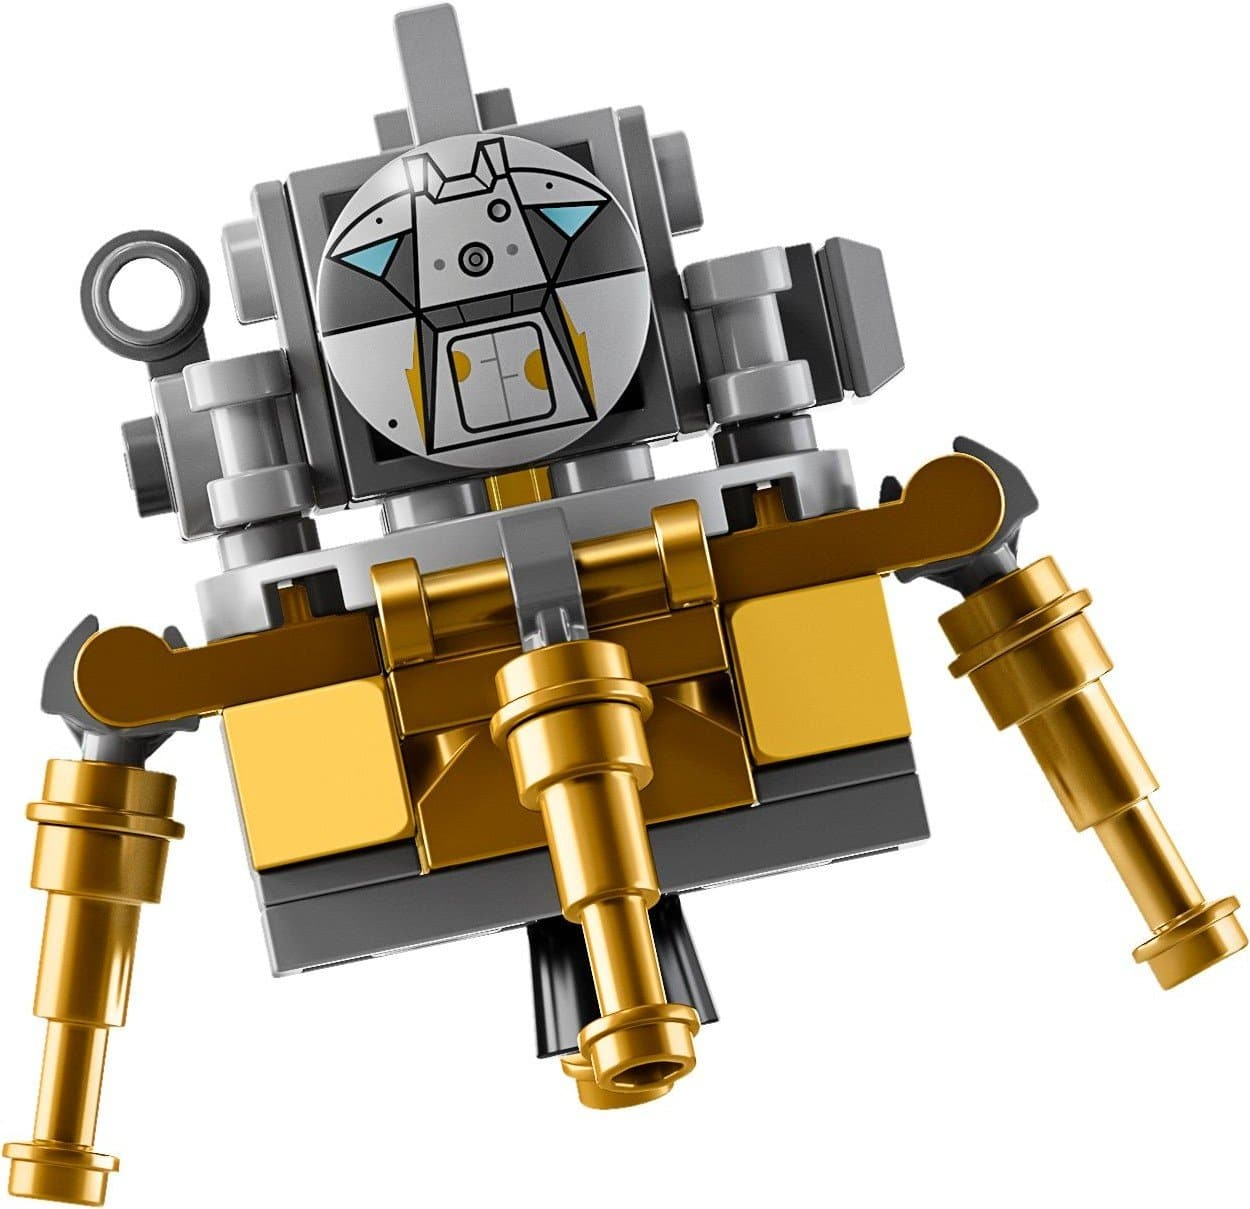 לגו 21309 Lego - נאסה אפולו סאטורן V freeshipping - TheBrick.co.il